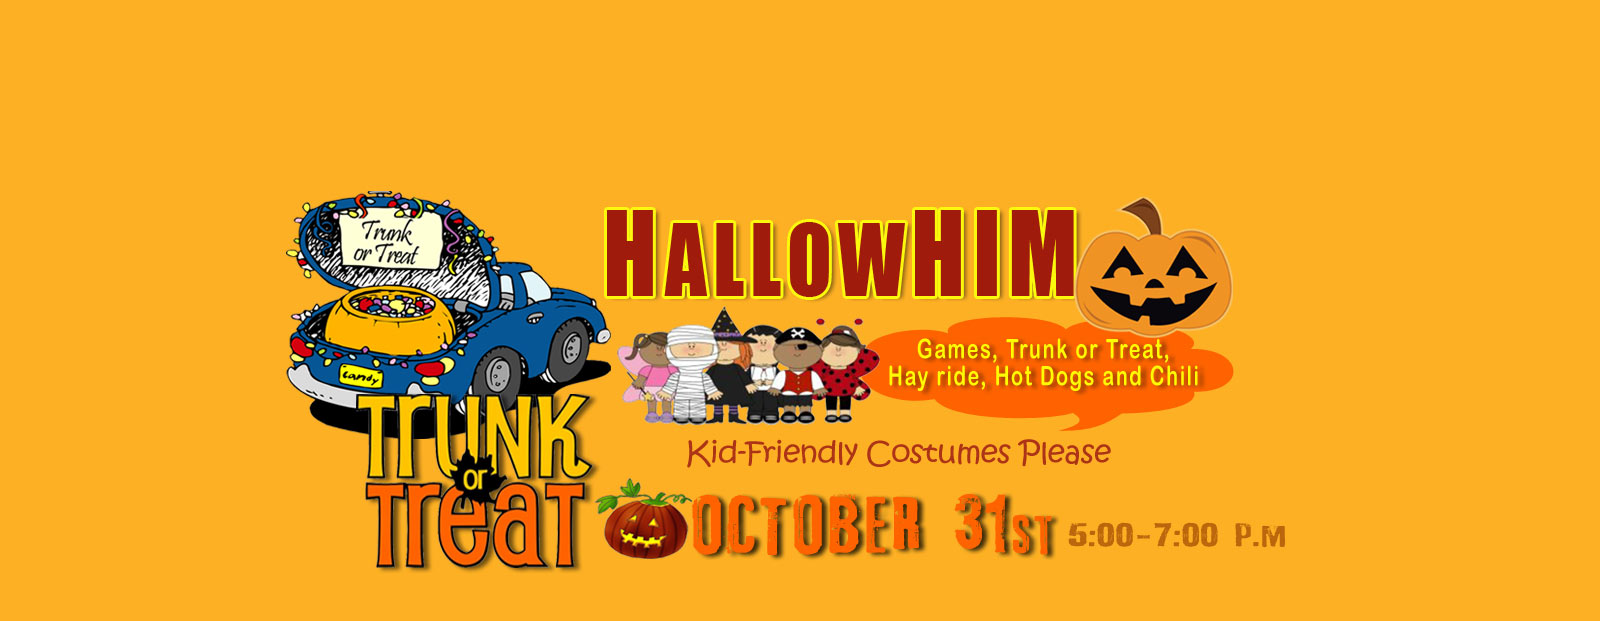 HallowHim Trunk or Treat